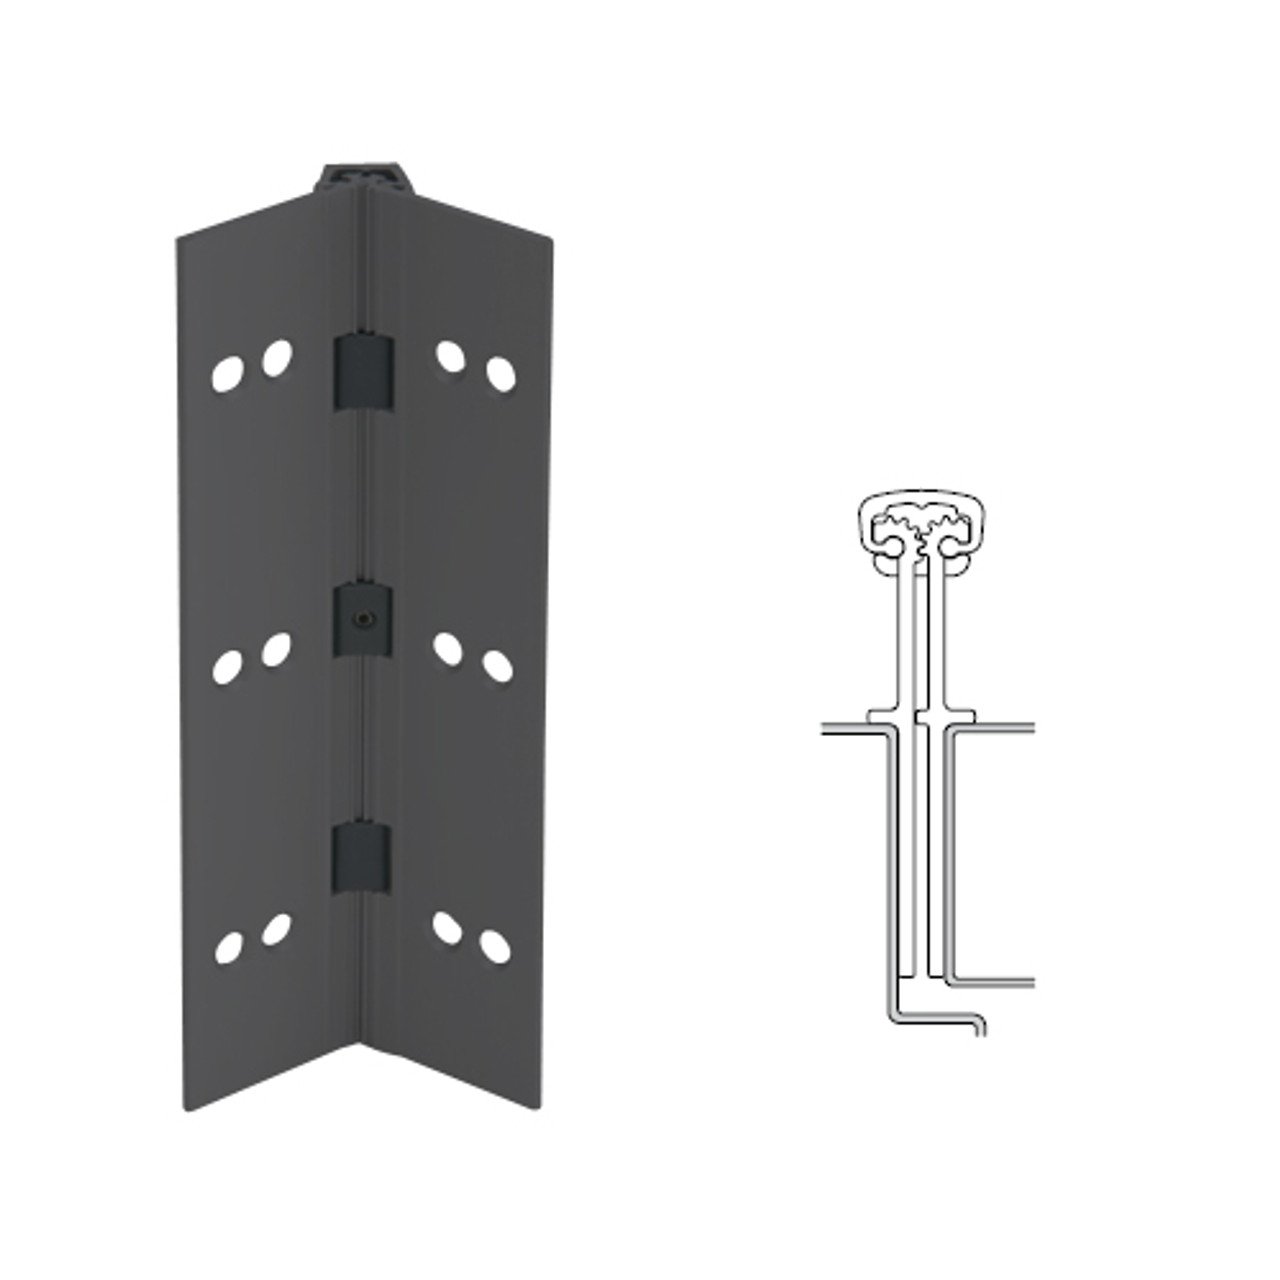 040XY-315AN-95 IVES Full Mortise Continuous Geared Hinges in Anodized Black